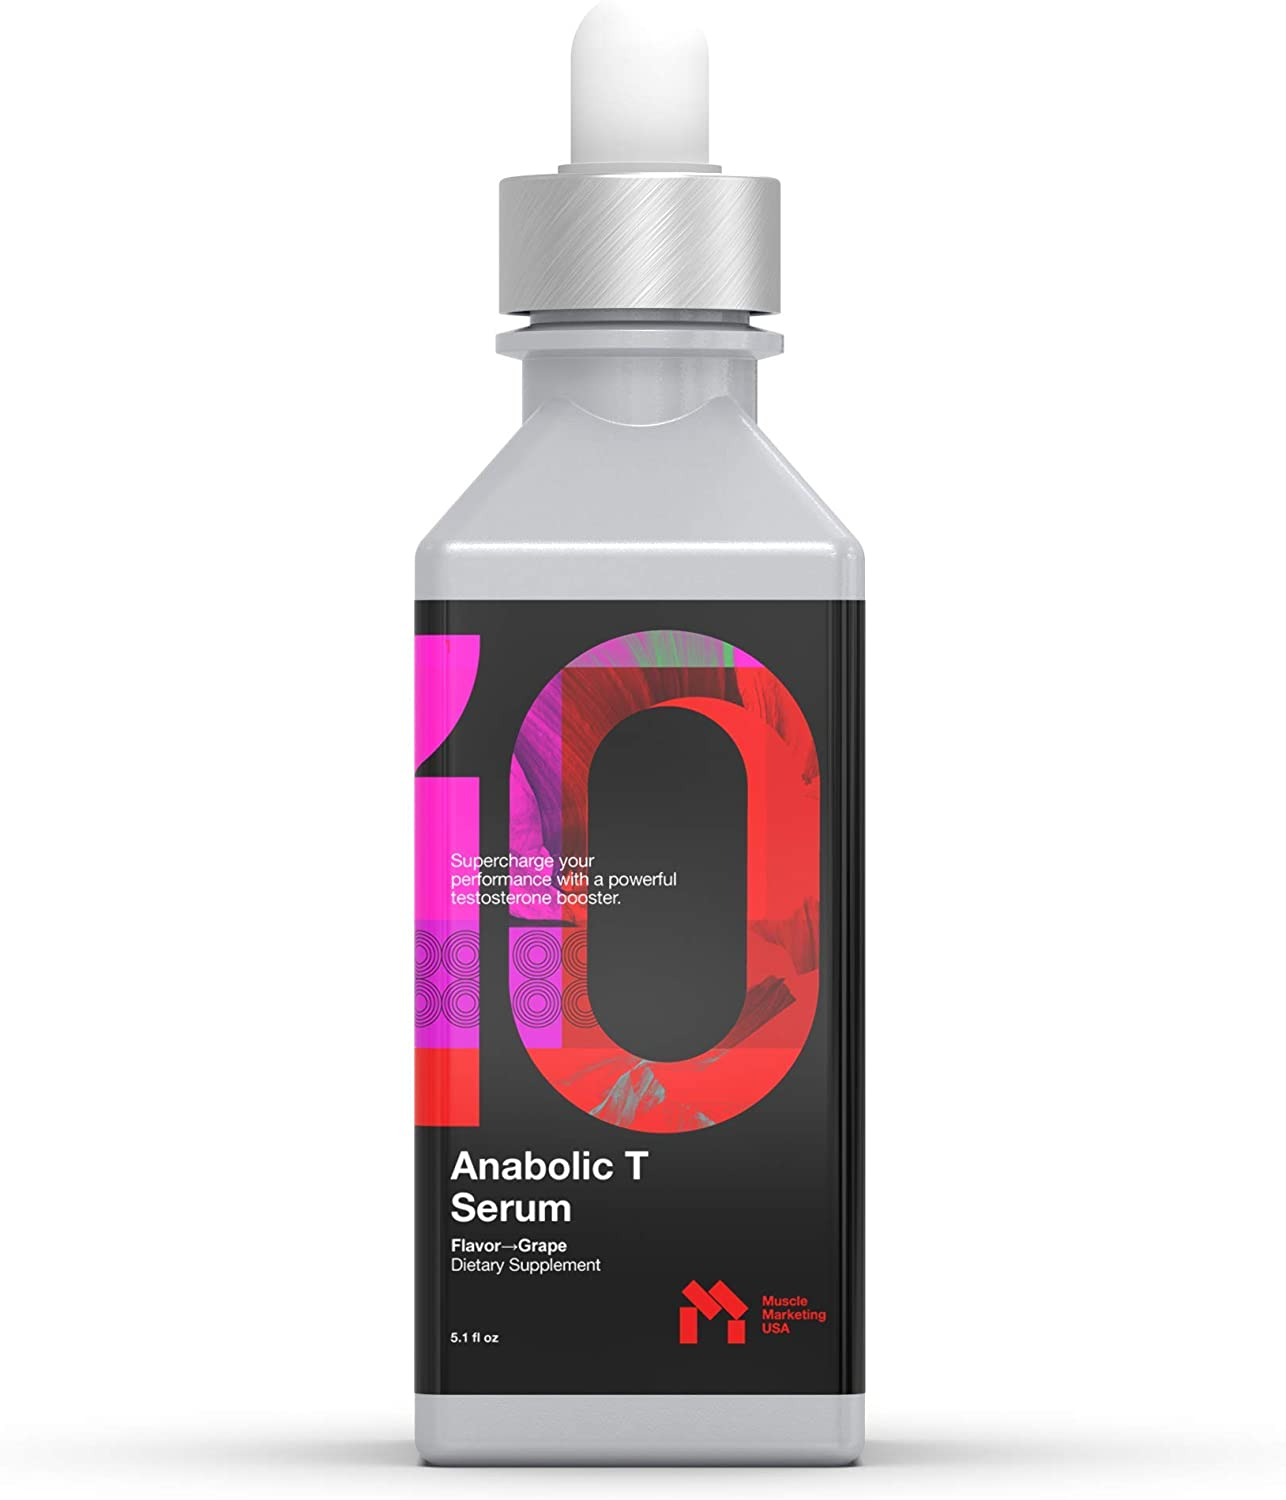 Anabolic T Serum: Testosterone Booster for Men, Increased Muscle Mass, Lean Body, Increases Energy, Boosts Free Testosterone Naturally, Strength + Stamina. Instant Absorption, Male Vitality + Libido.